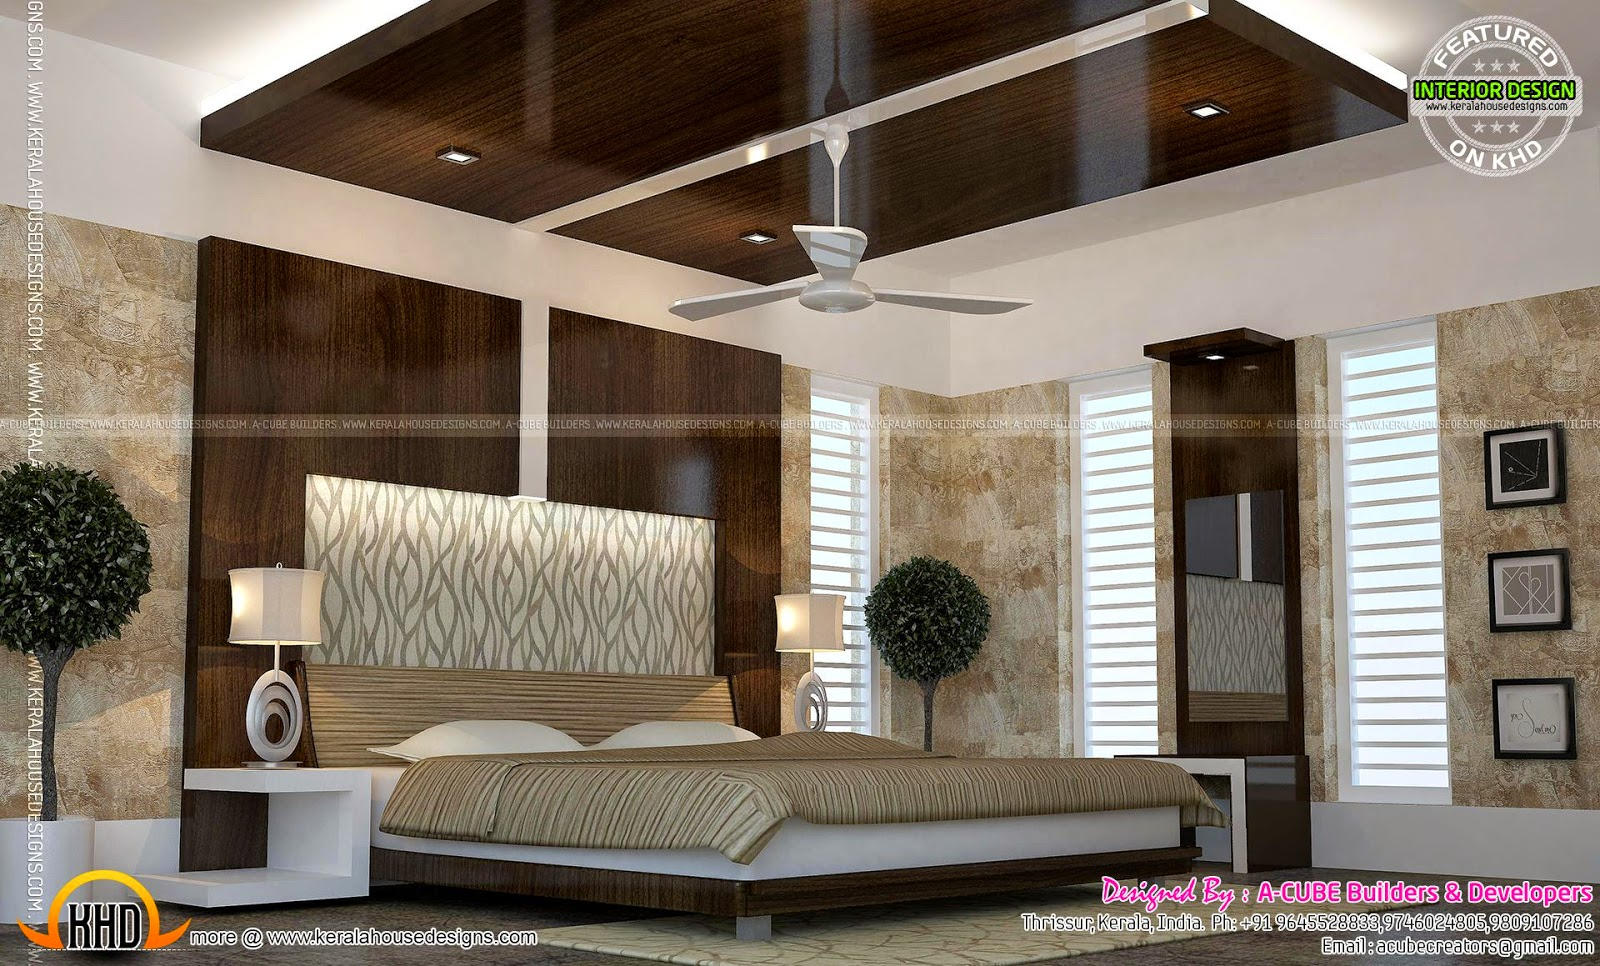 Kerala interior design ideas kerala home design and for House of interior design